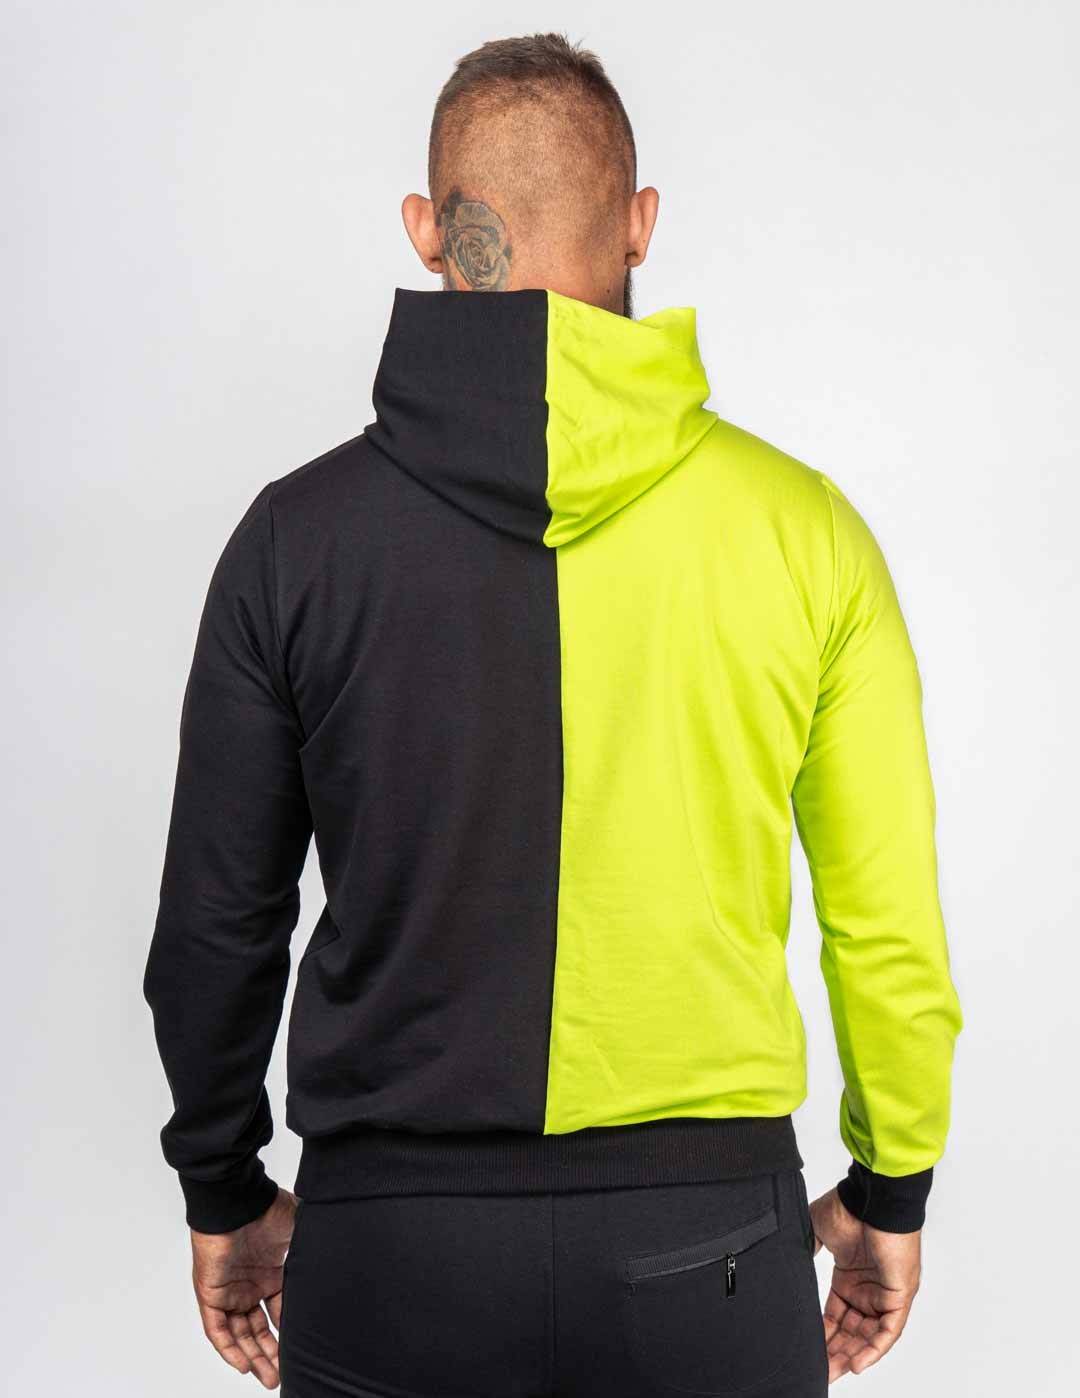 Hoodie Collection NEON STREETS Black/Yellow